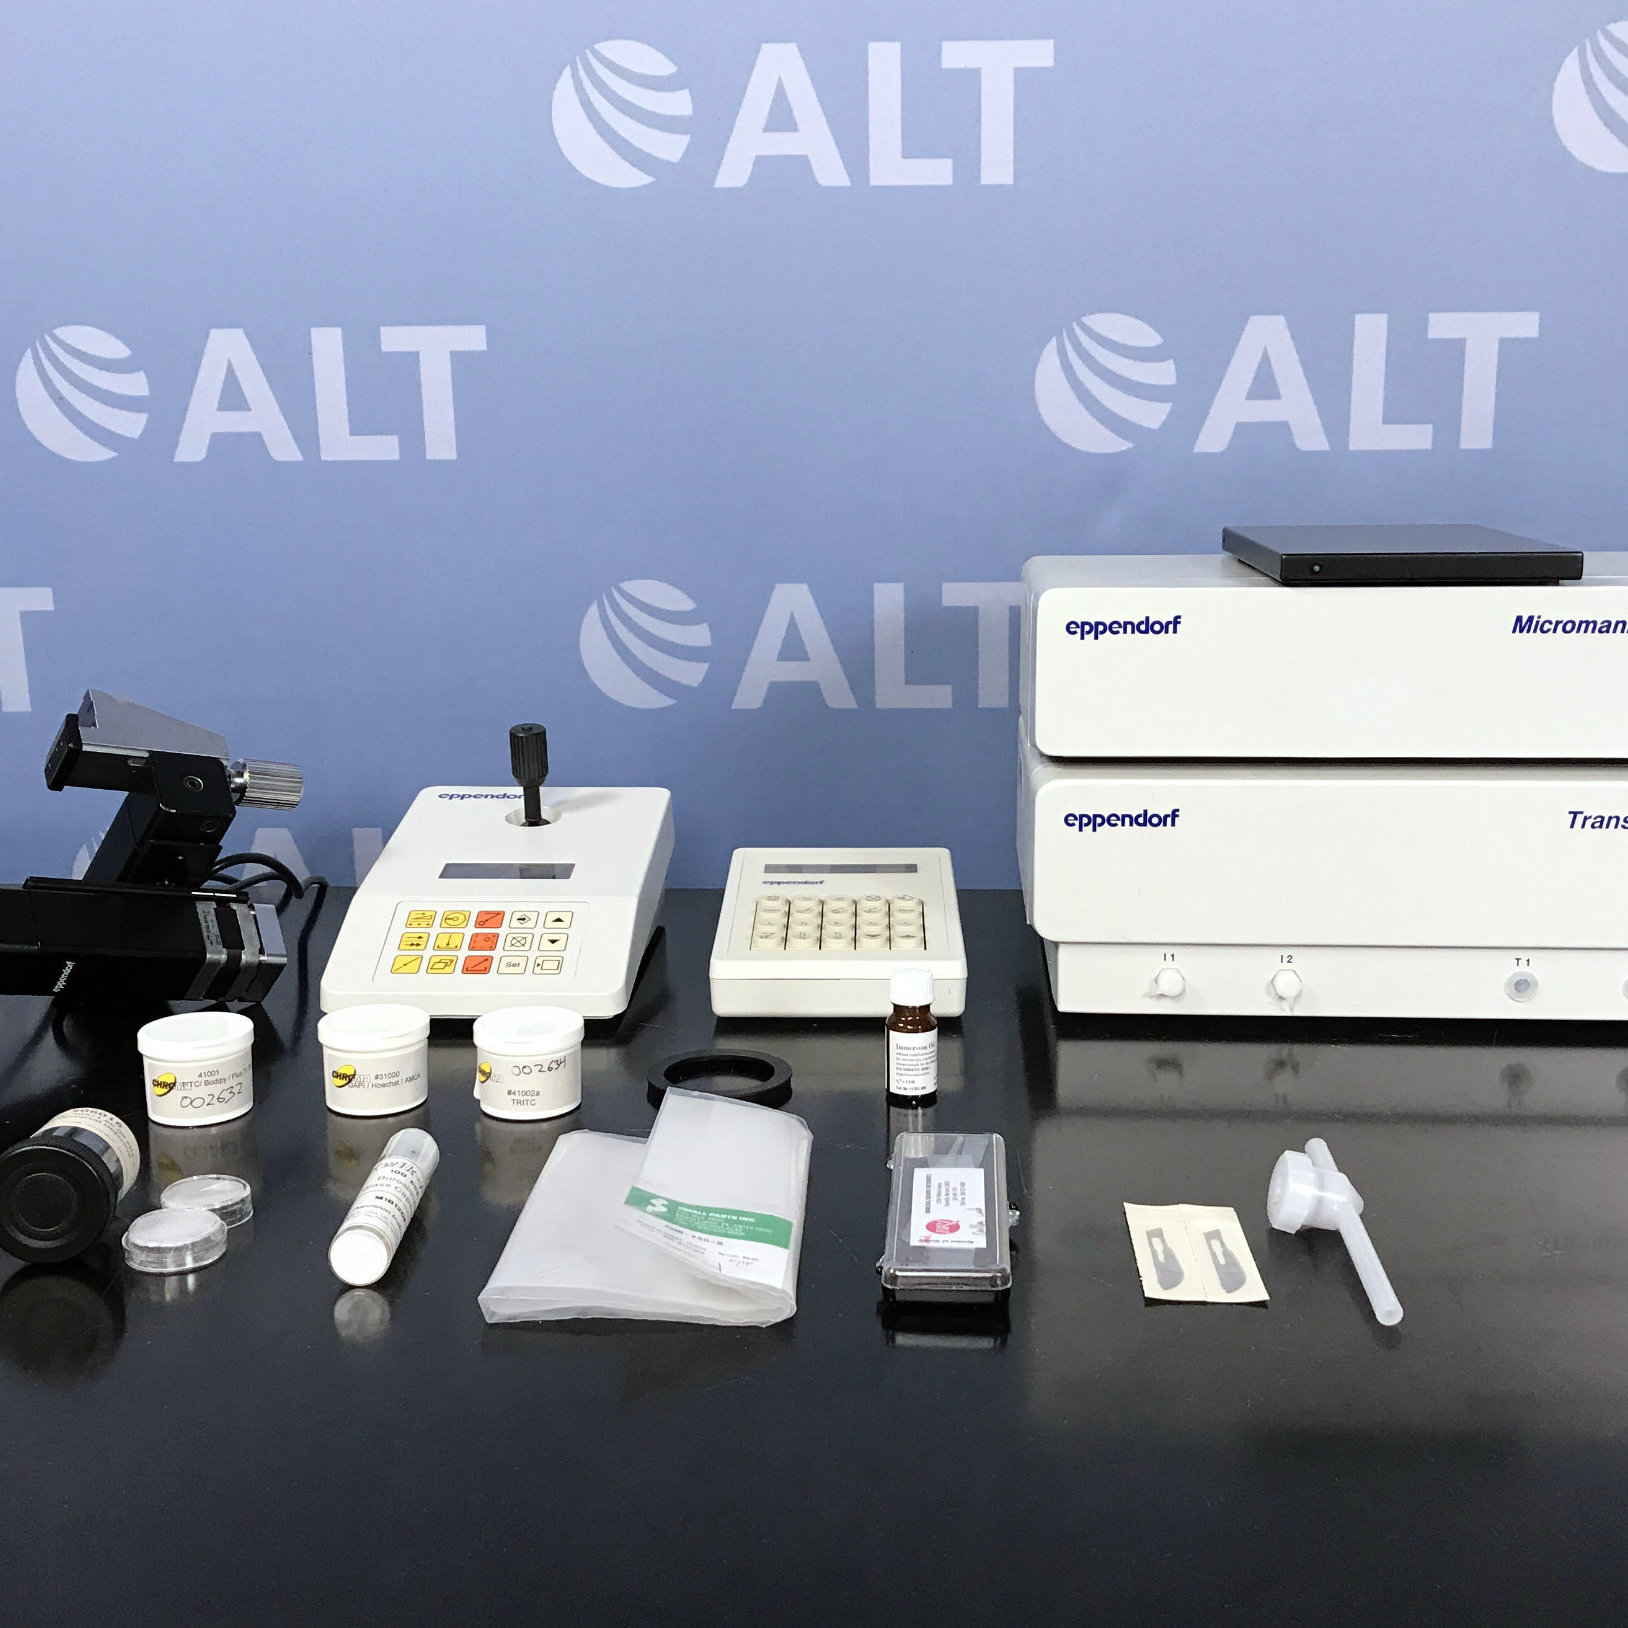 Automated Microinjection System, Transjector 5246 Basic and Micromanipulator 5171 Name